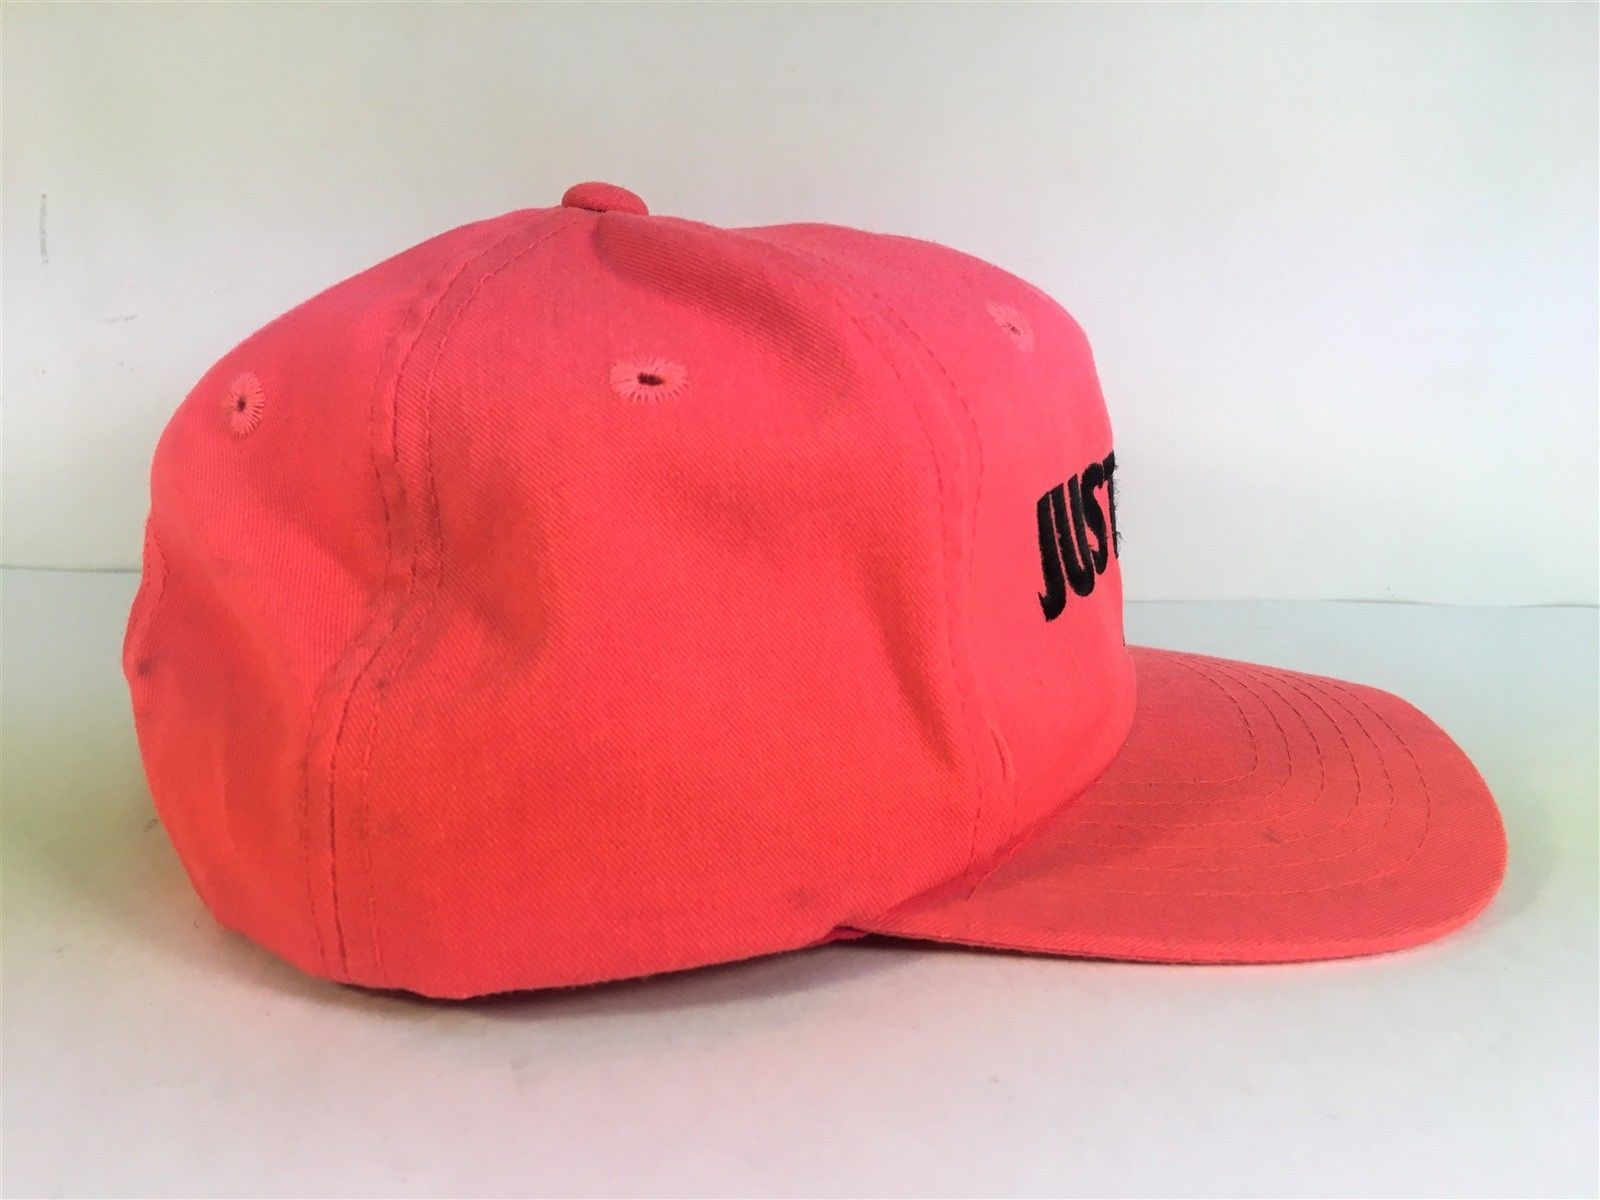 VTG Nike Just Do It Spell Out Snapback Hat Infrared 80s 90s